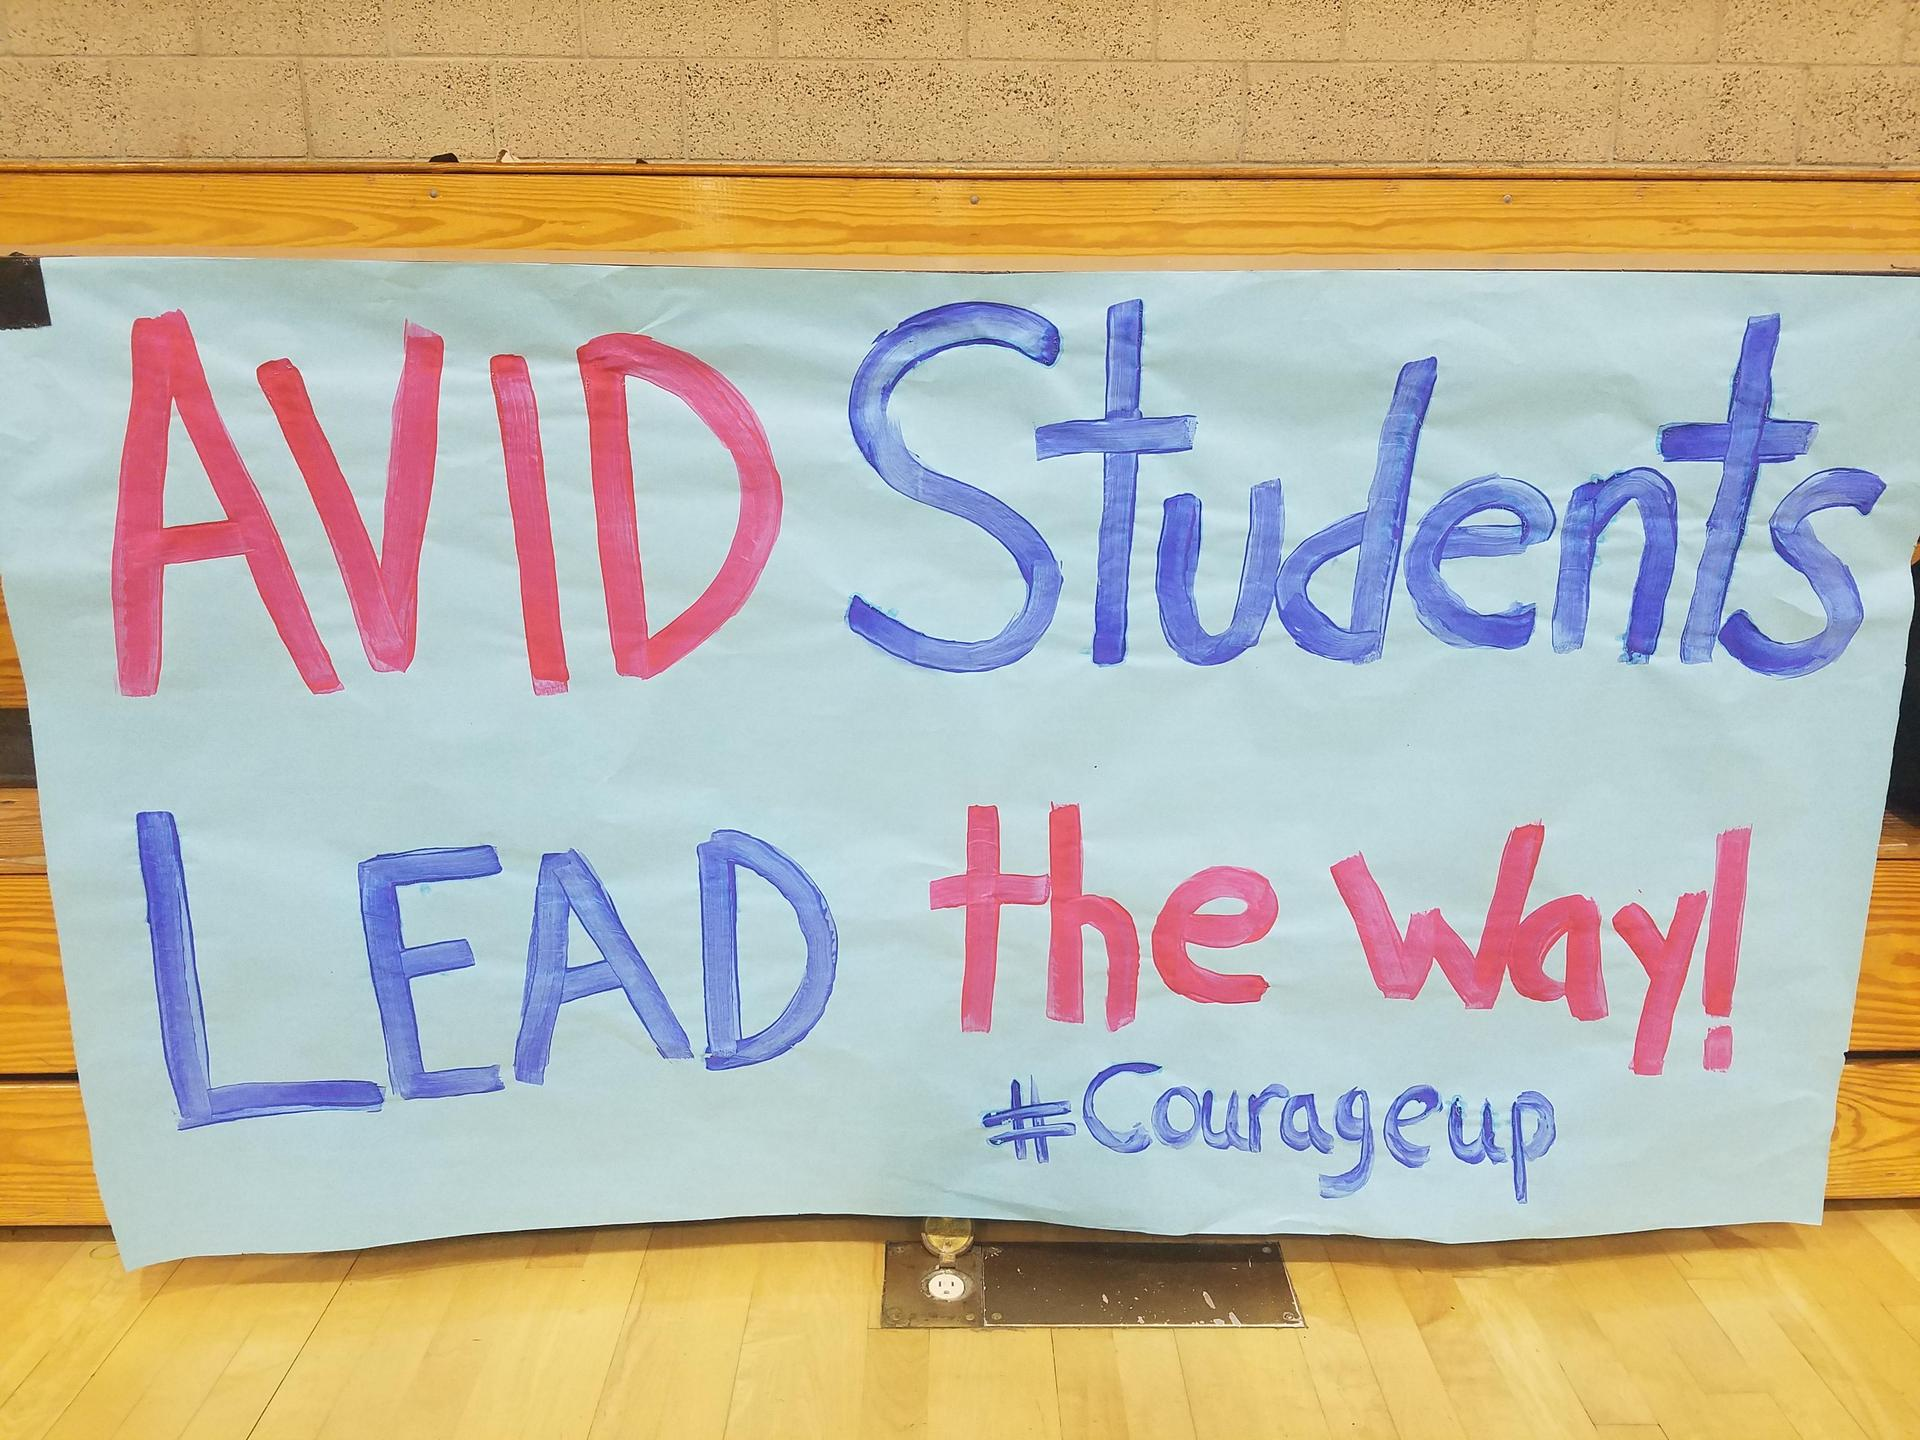 Closeup of a poster with the caption 'AVID Students Lead The Way!' and hashtag  courage up.